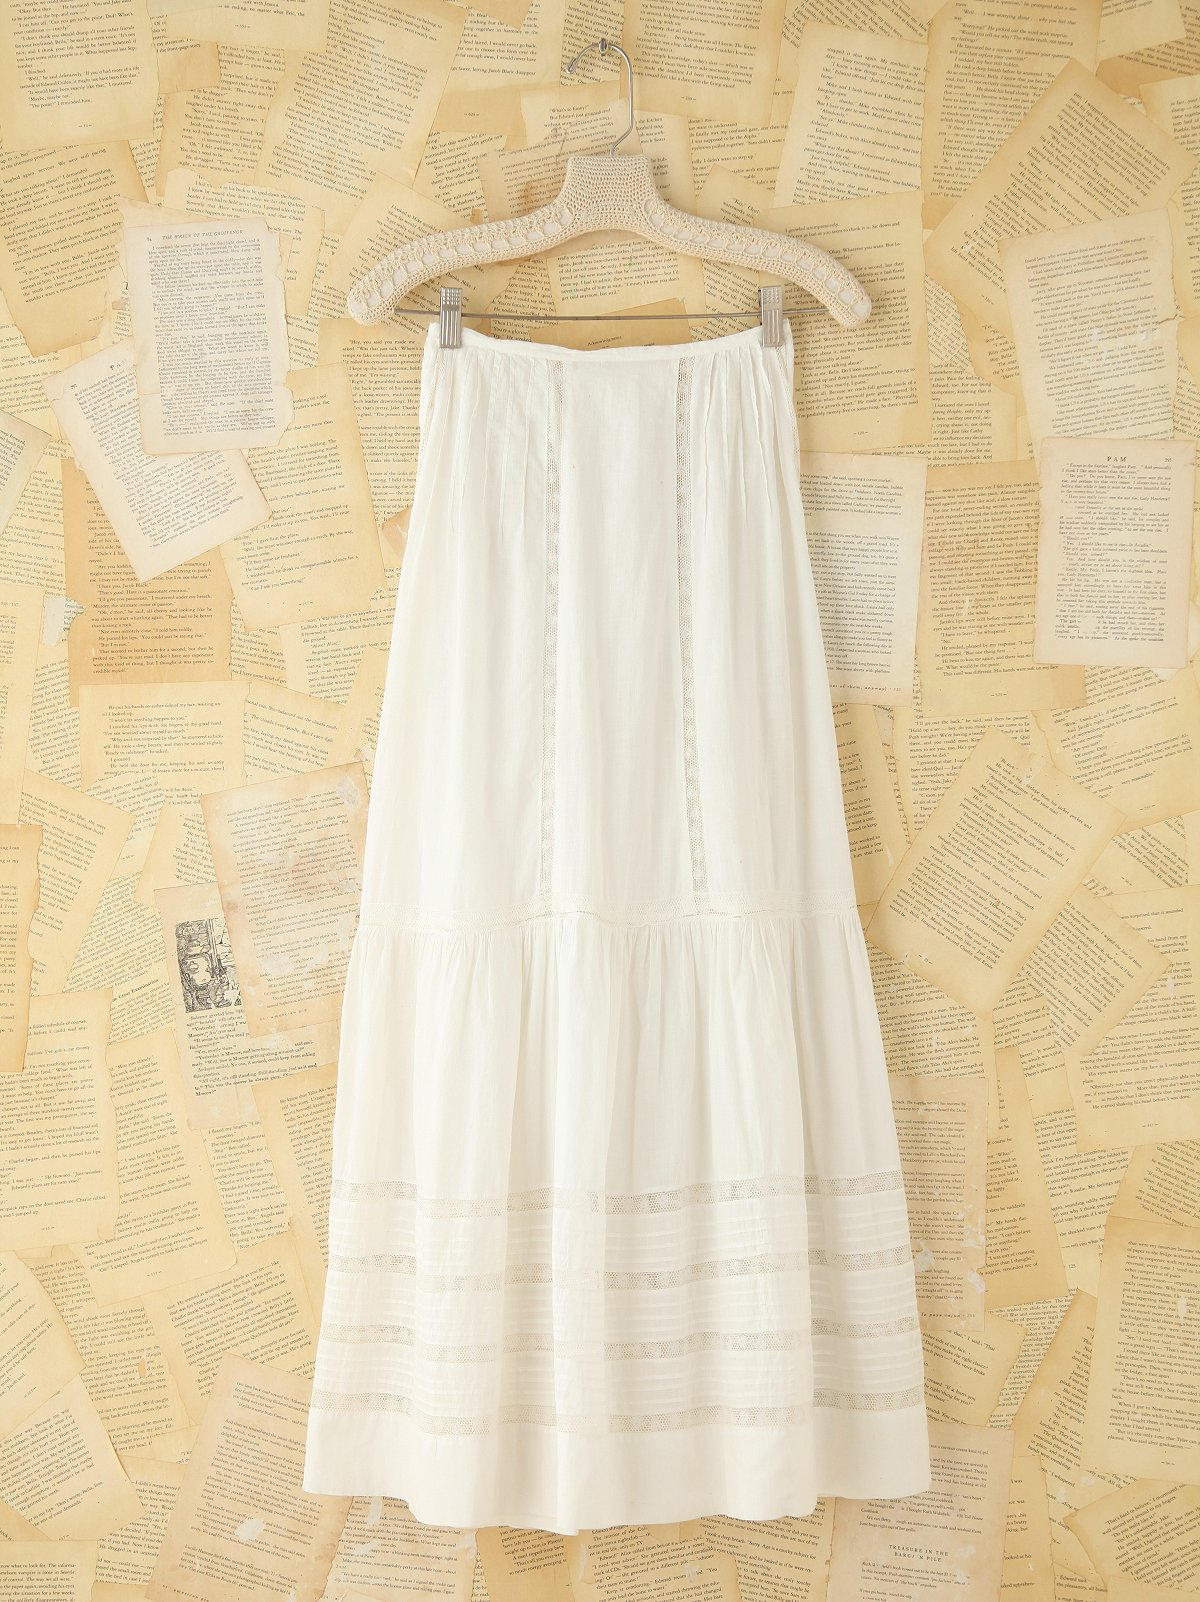 Vintage Cotton Maxi Skirt